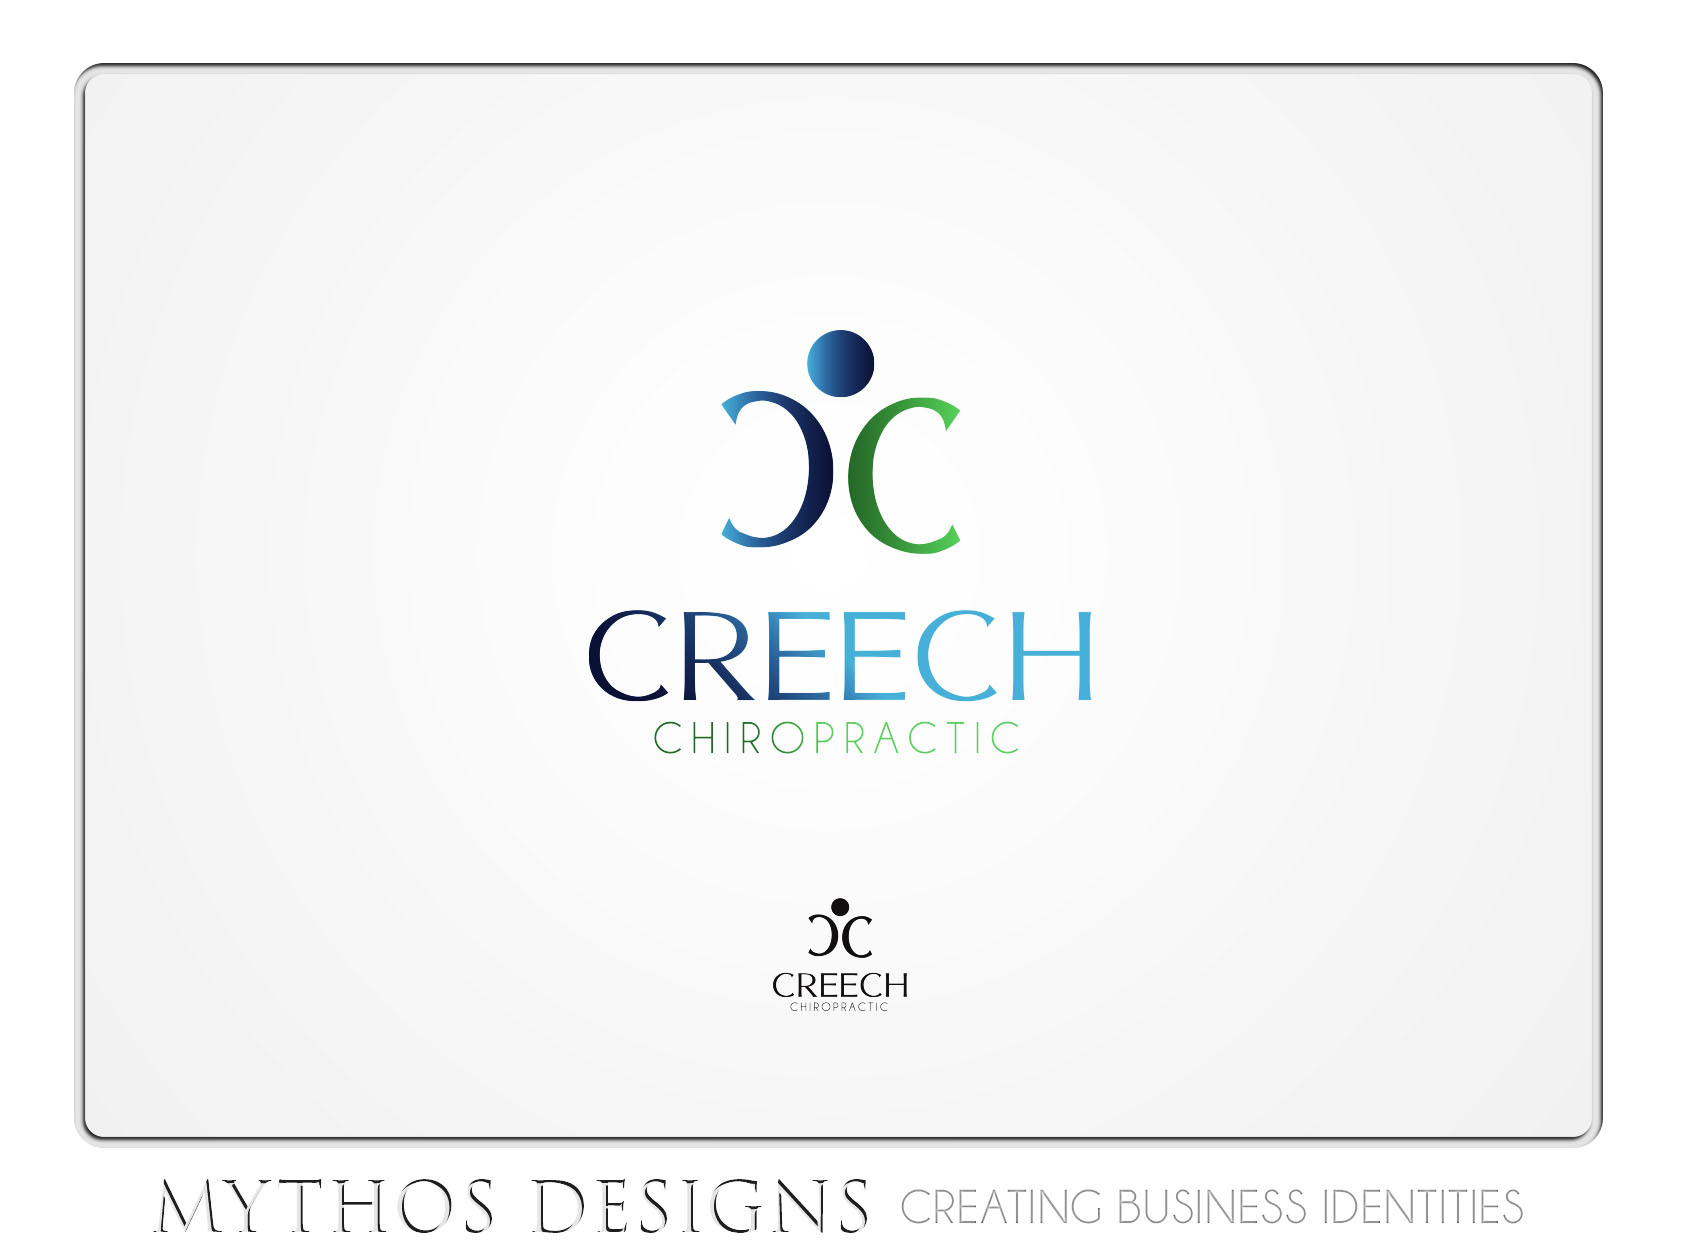 Logo Design by Mythos Designs - Entry No. 82 in the Logo Design Contest Imaginative Logo Design for Creech Chiropractic.